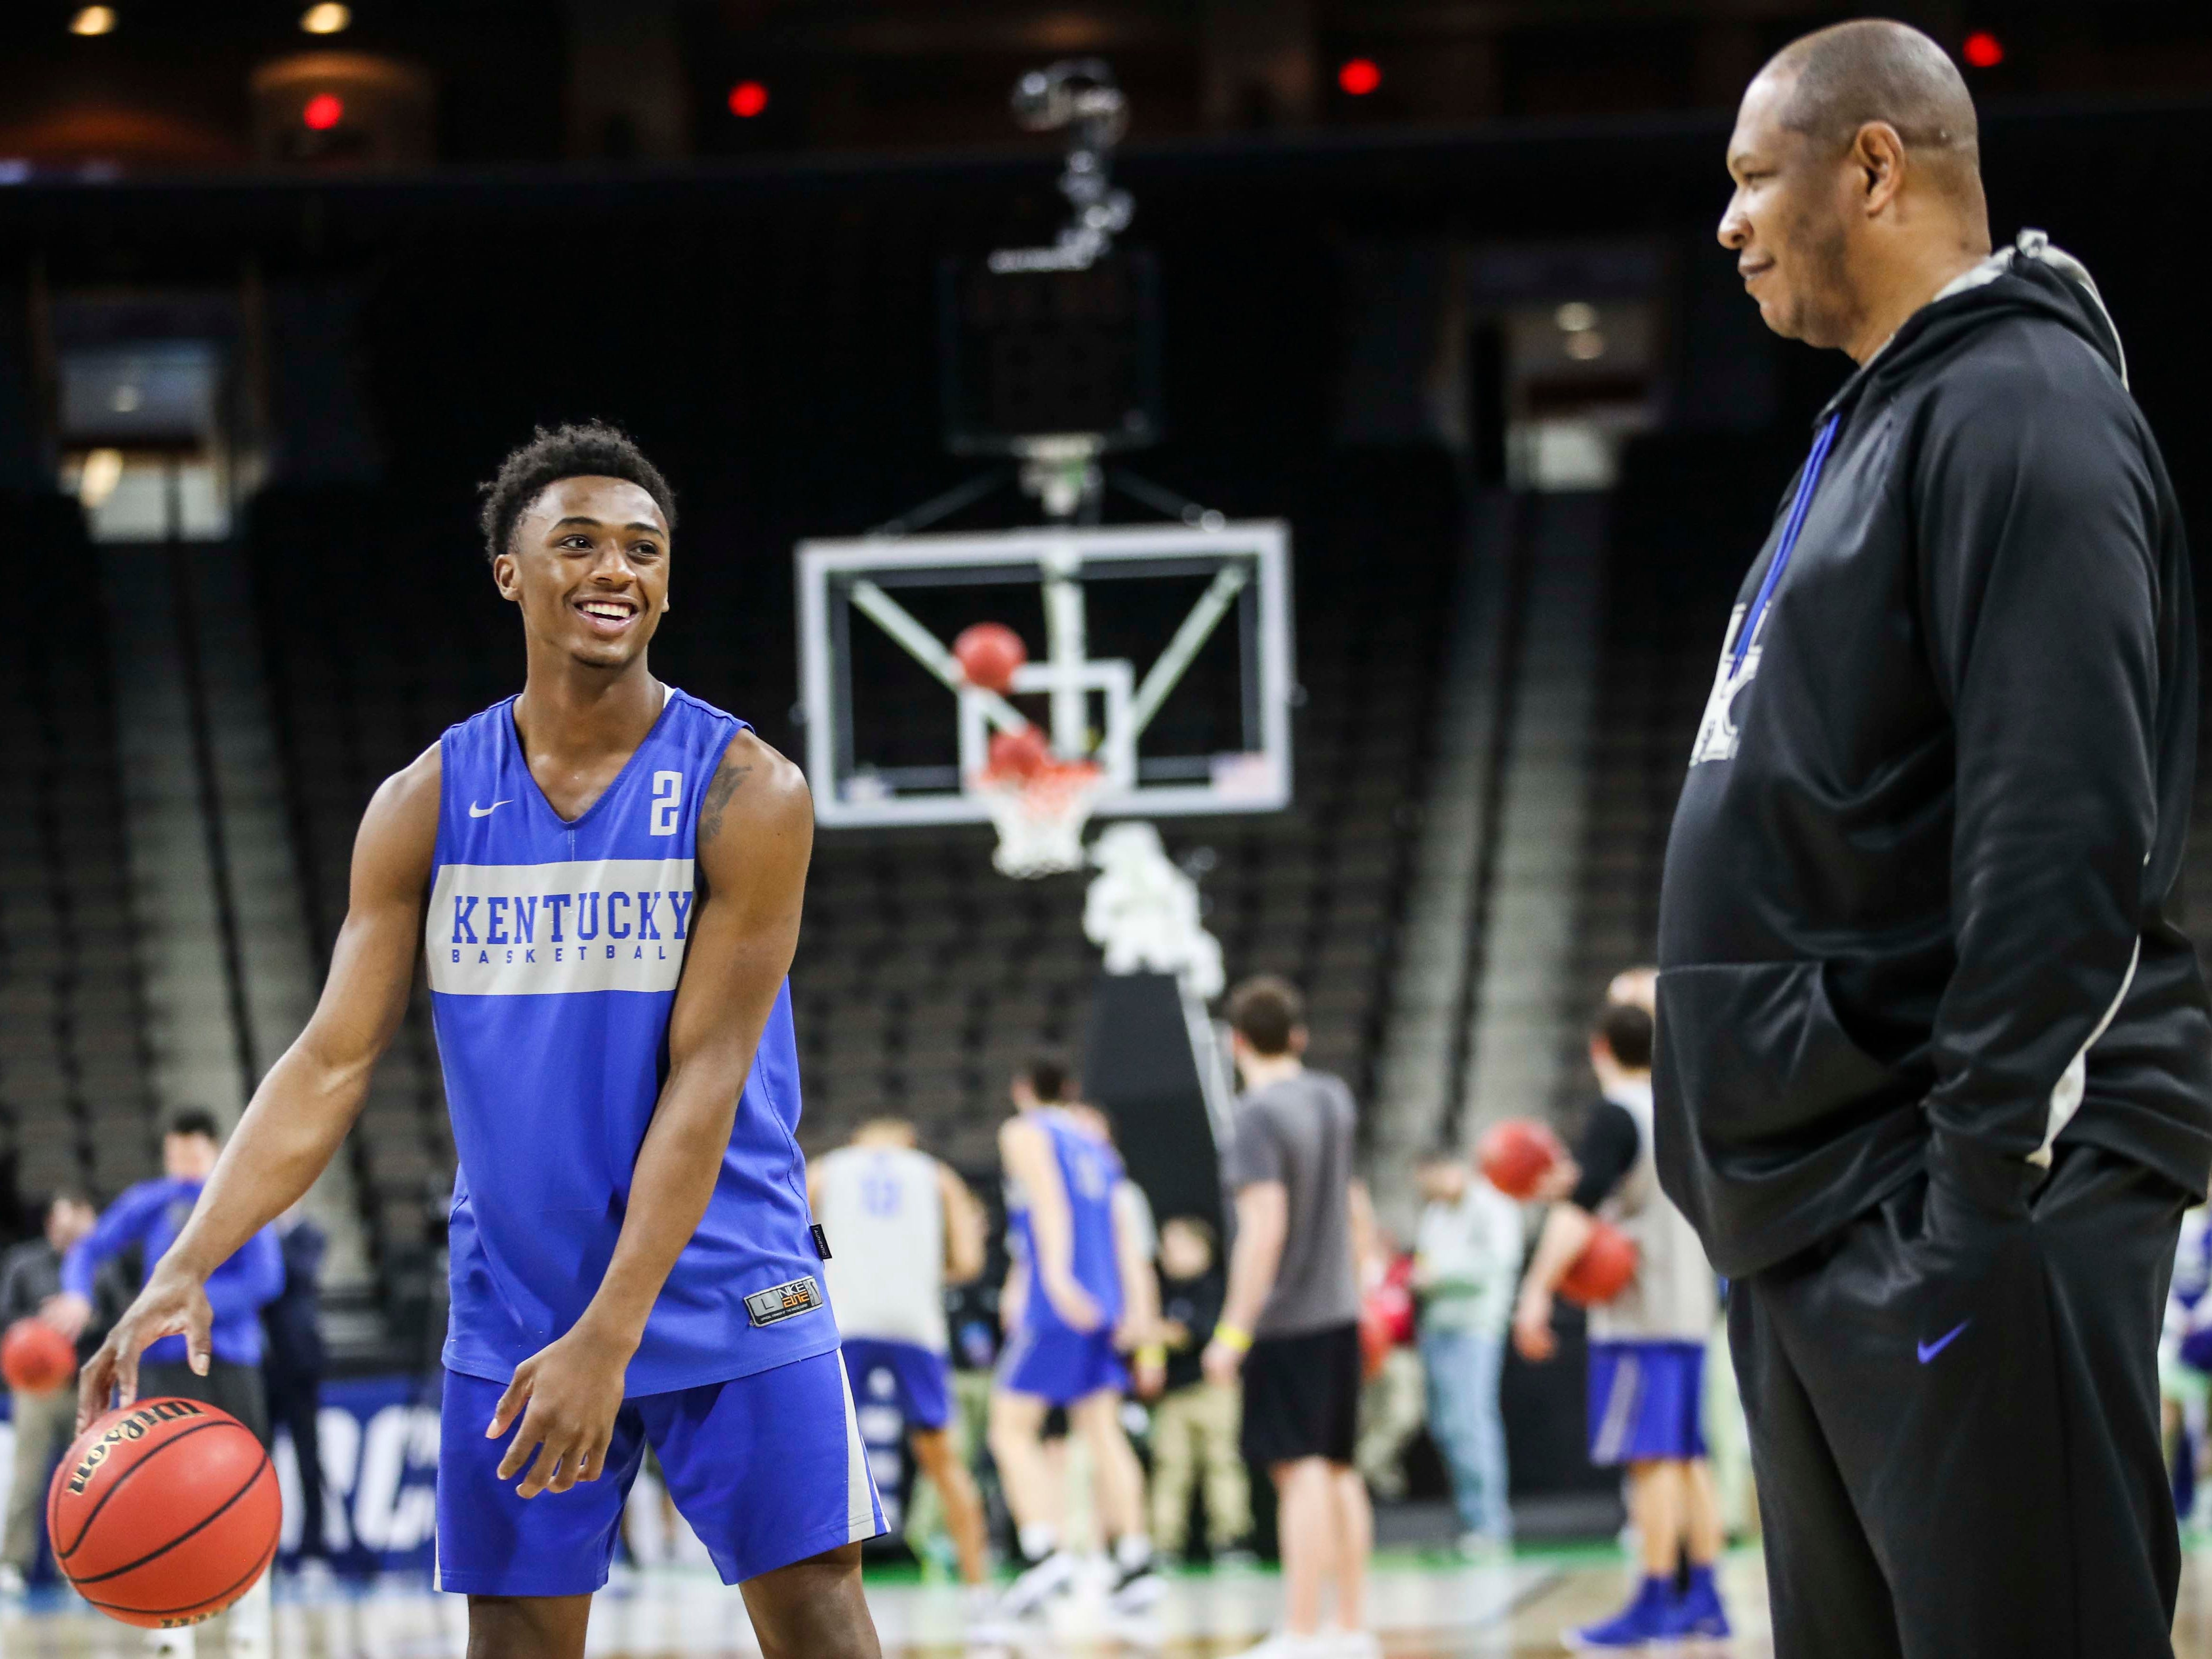 Kentucky assistant coach Kenny Payne looked on as Ashton Hagans laughed during the NCAA tourney practice Wednesday afternoon in Jacksonville. March 20, 2019